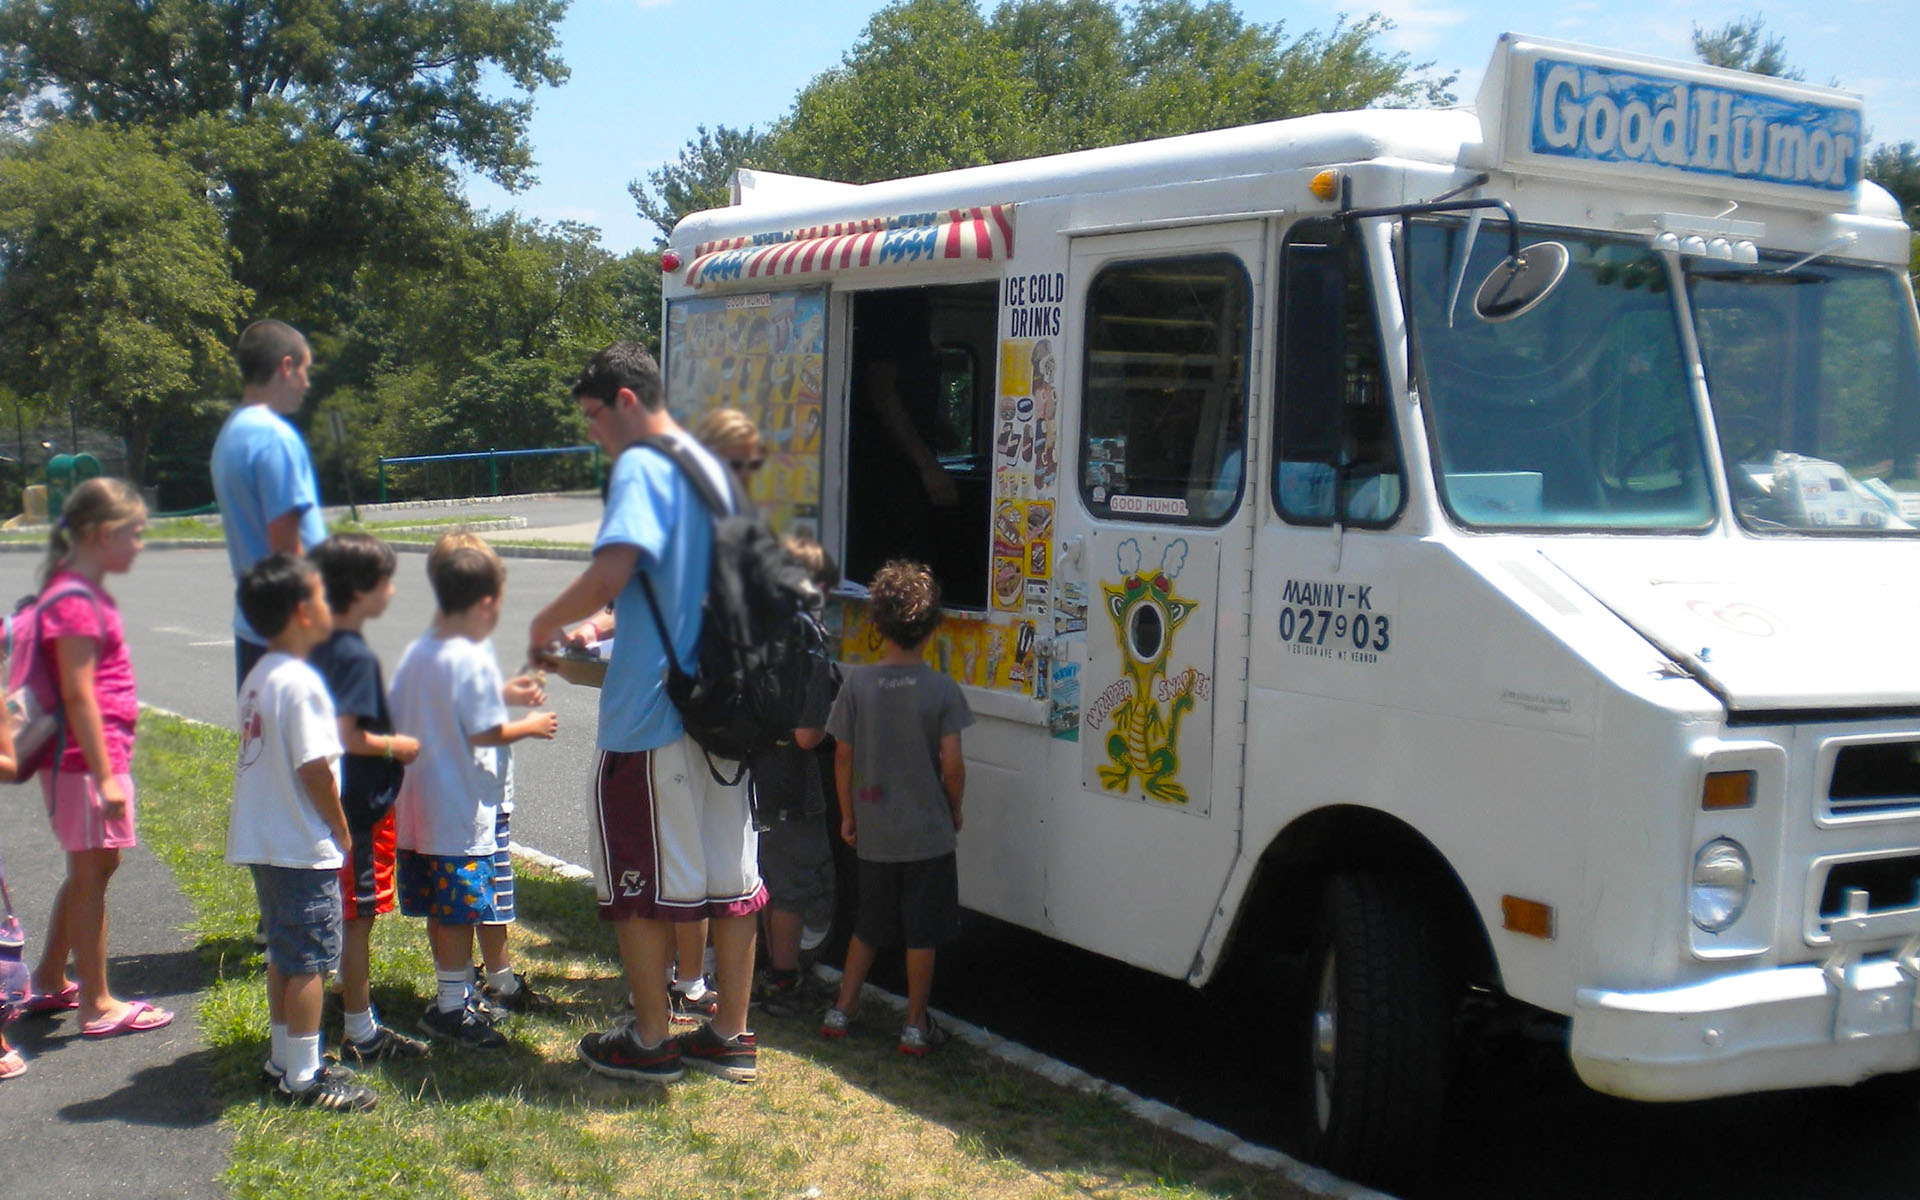 Ice cream for fun truck - New York summer - events - Photo gallery 3